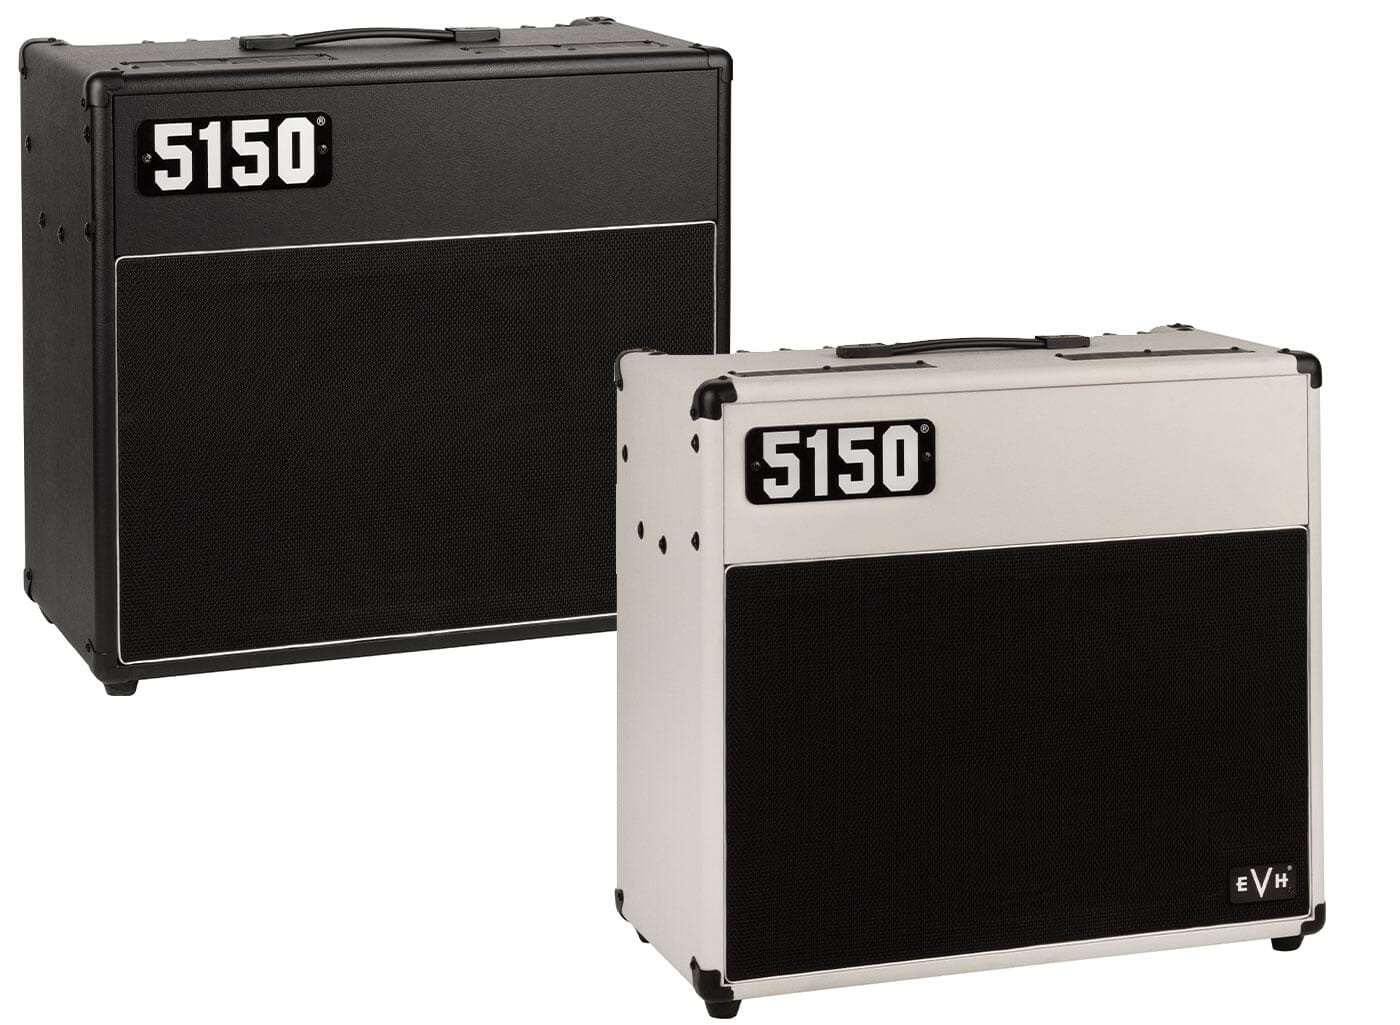 EVH 5150 combos in black and ivory